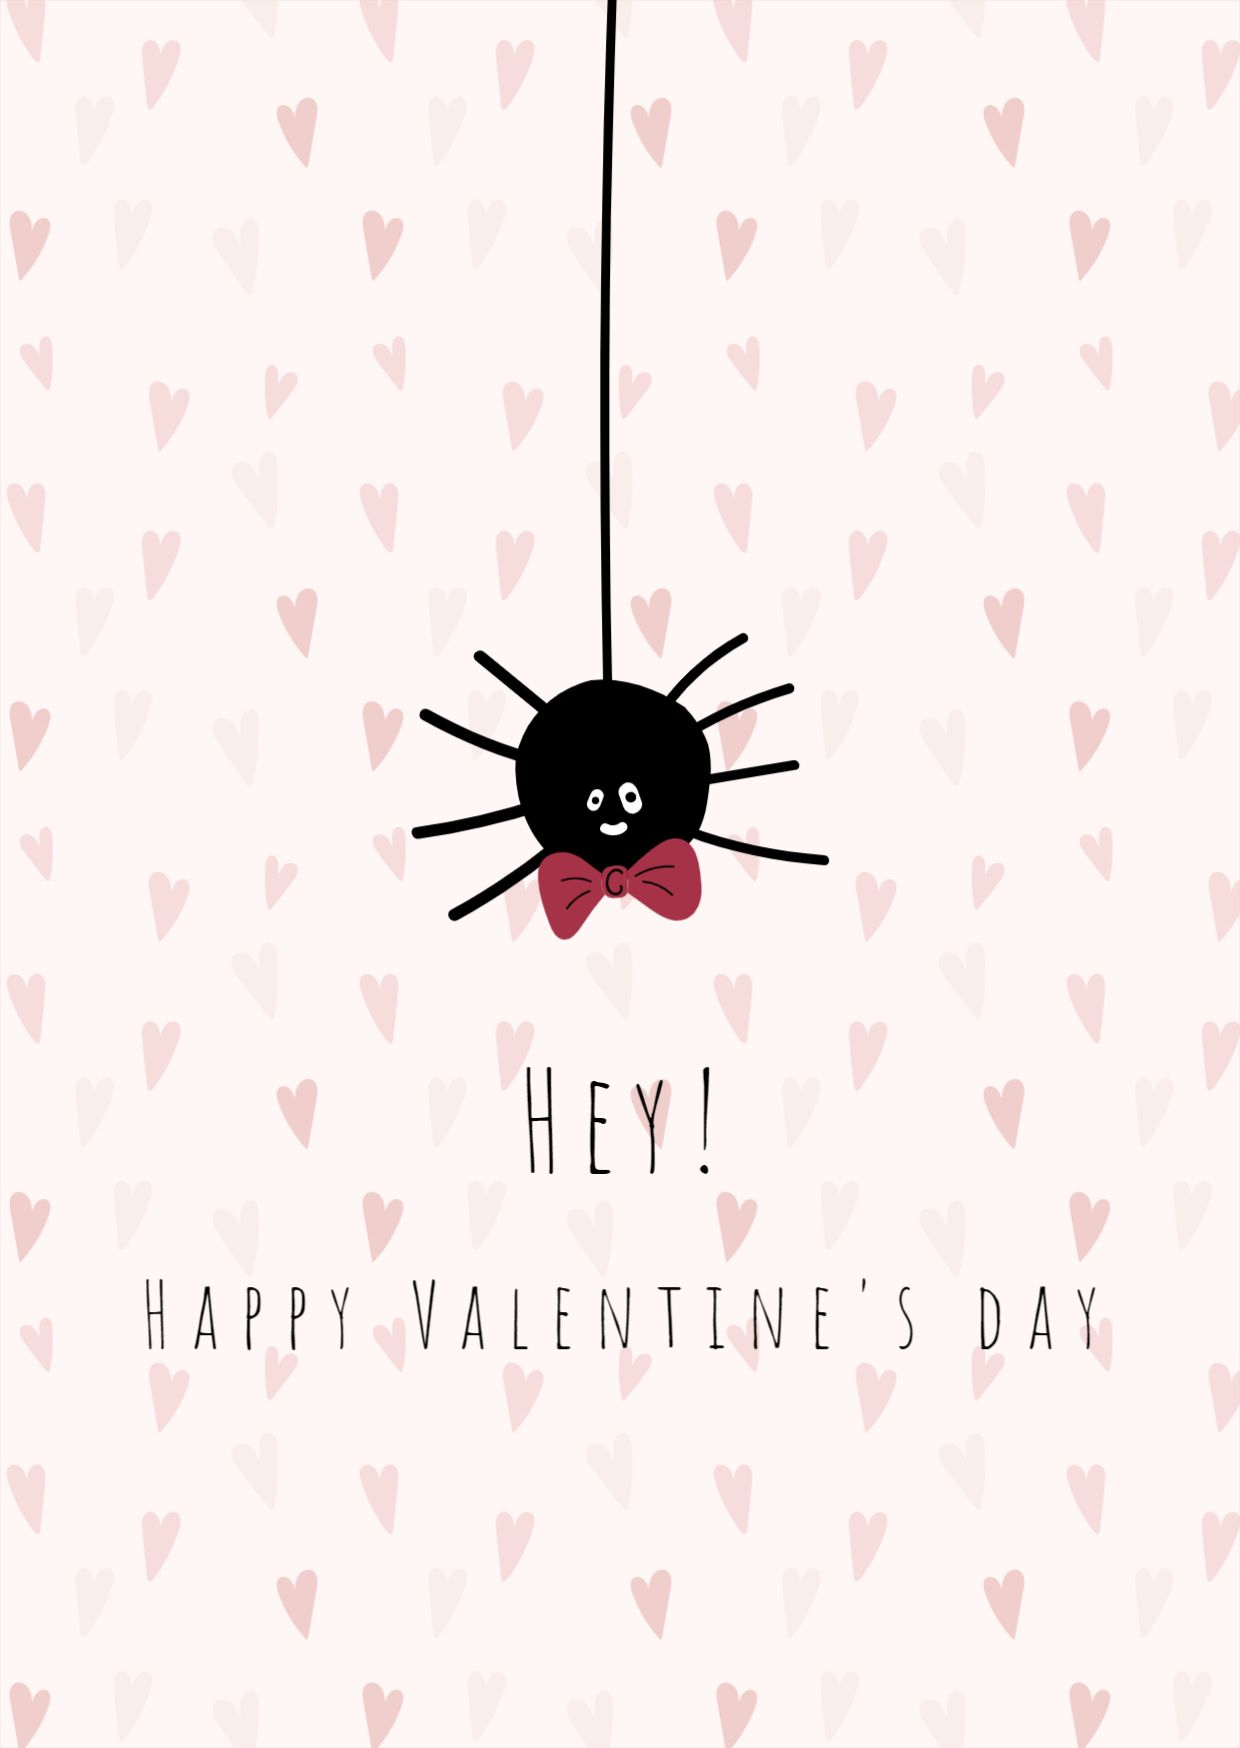 Spooky Spider Valentines Day Greeting Card Post Template